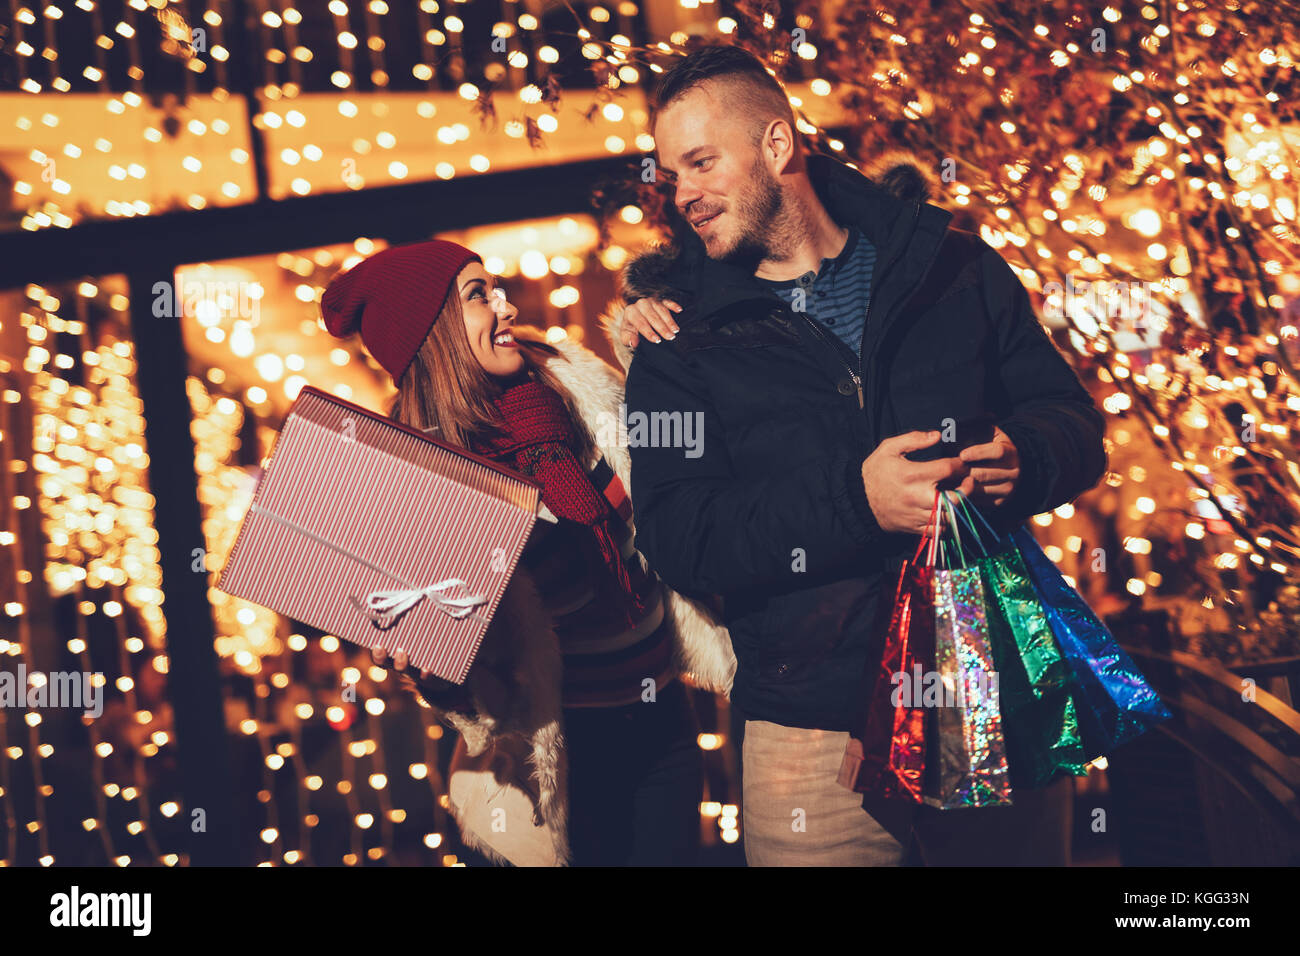 Young couple standing outside with shopping bags and boxes and enjoying an evening stroll through town at Christmas - Stock Image